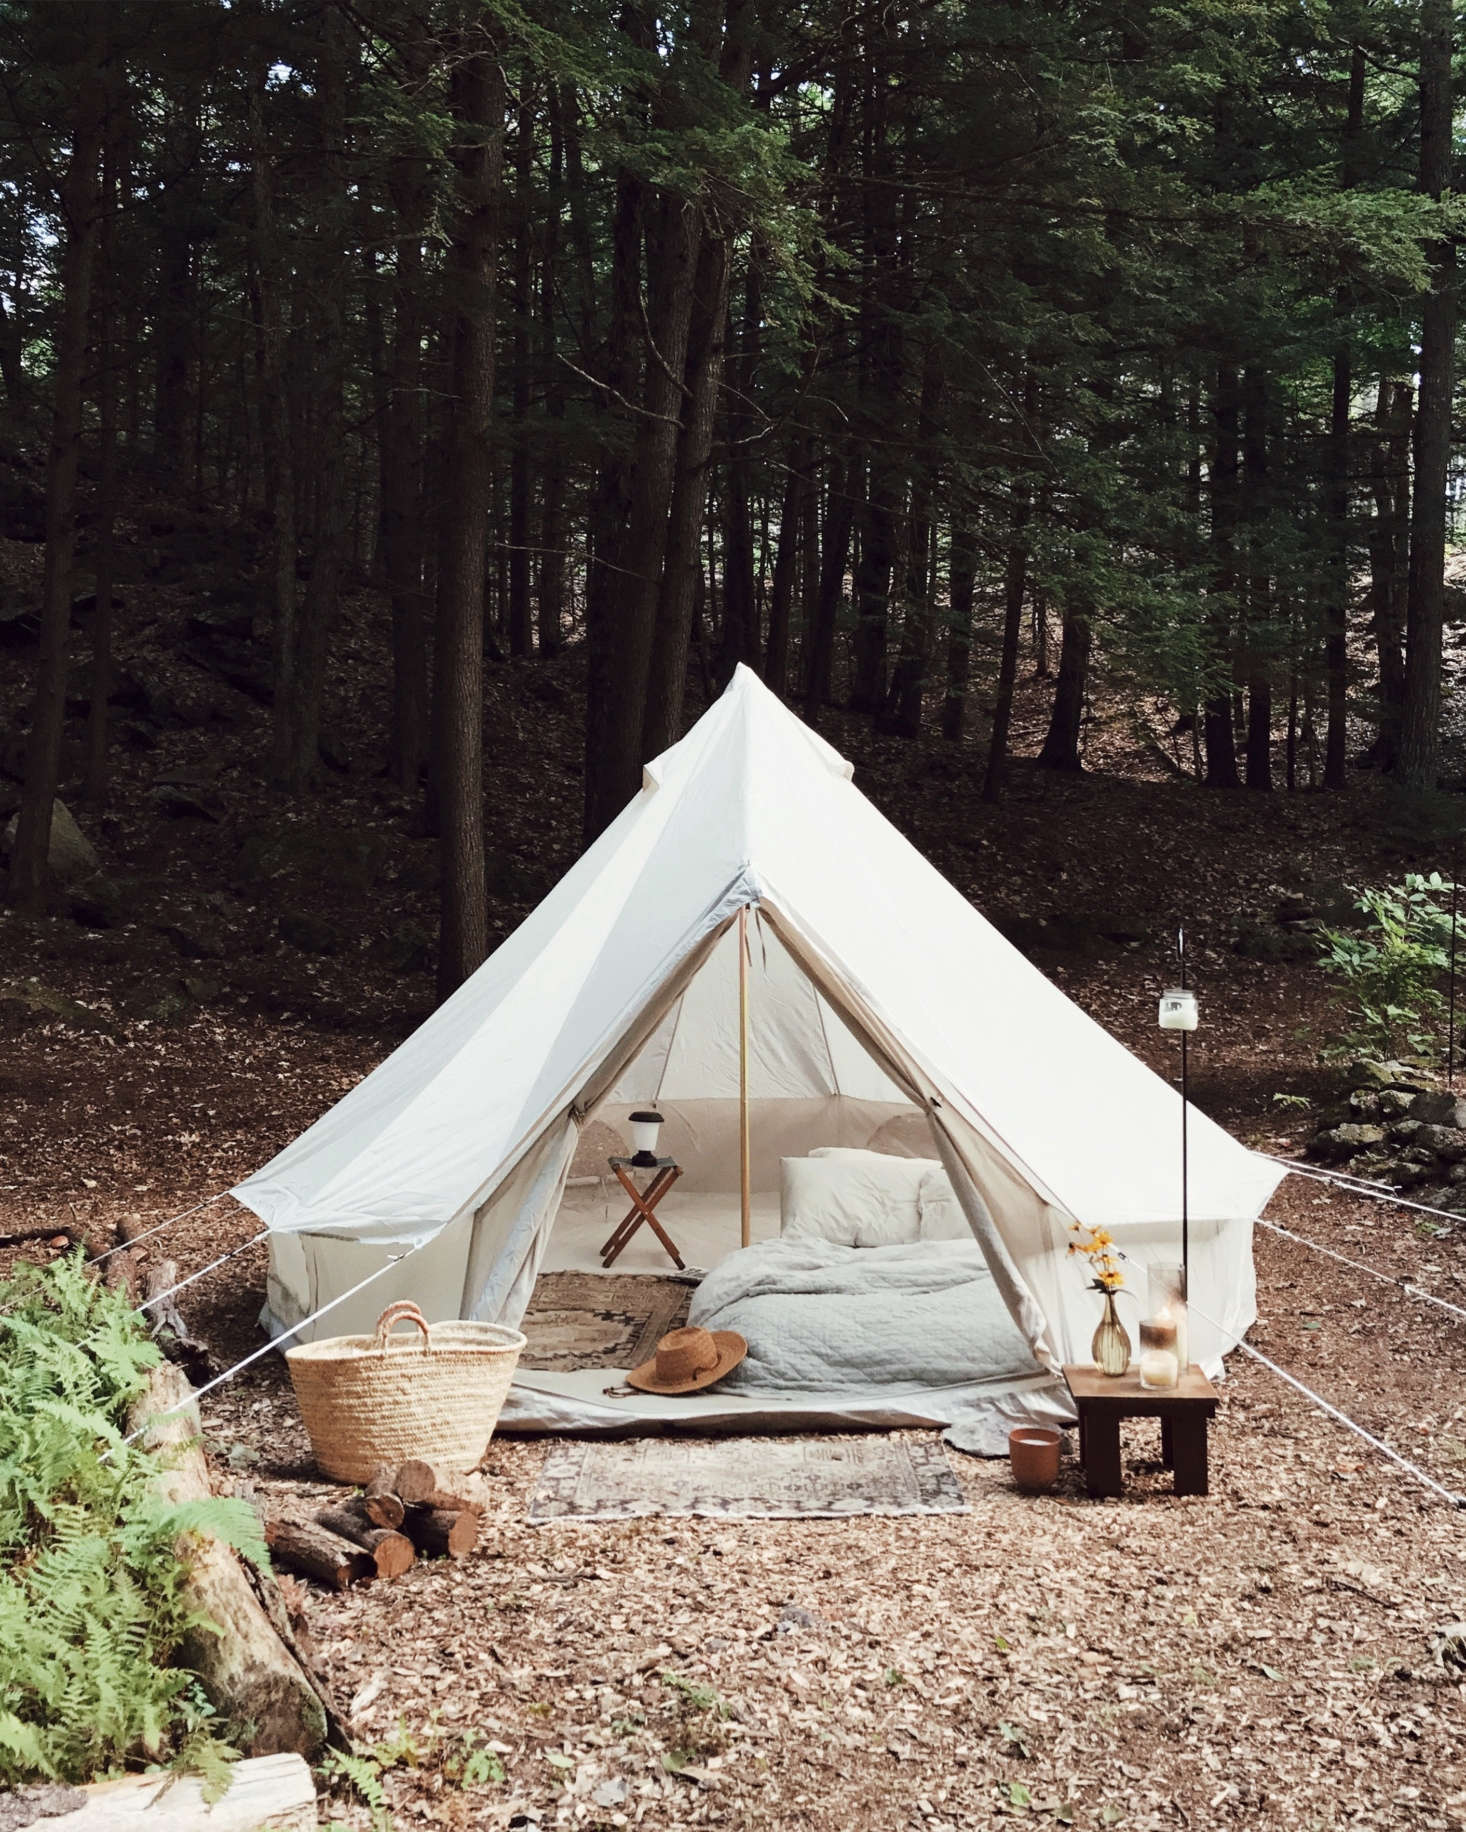 Nearby is a lushly outfittedbell tent, which the couple uses as extra lodgings when friends come to stay. (It's theMeriwether Tentby Shelter Co.)